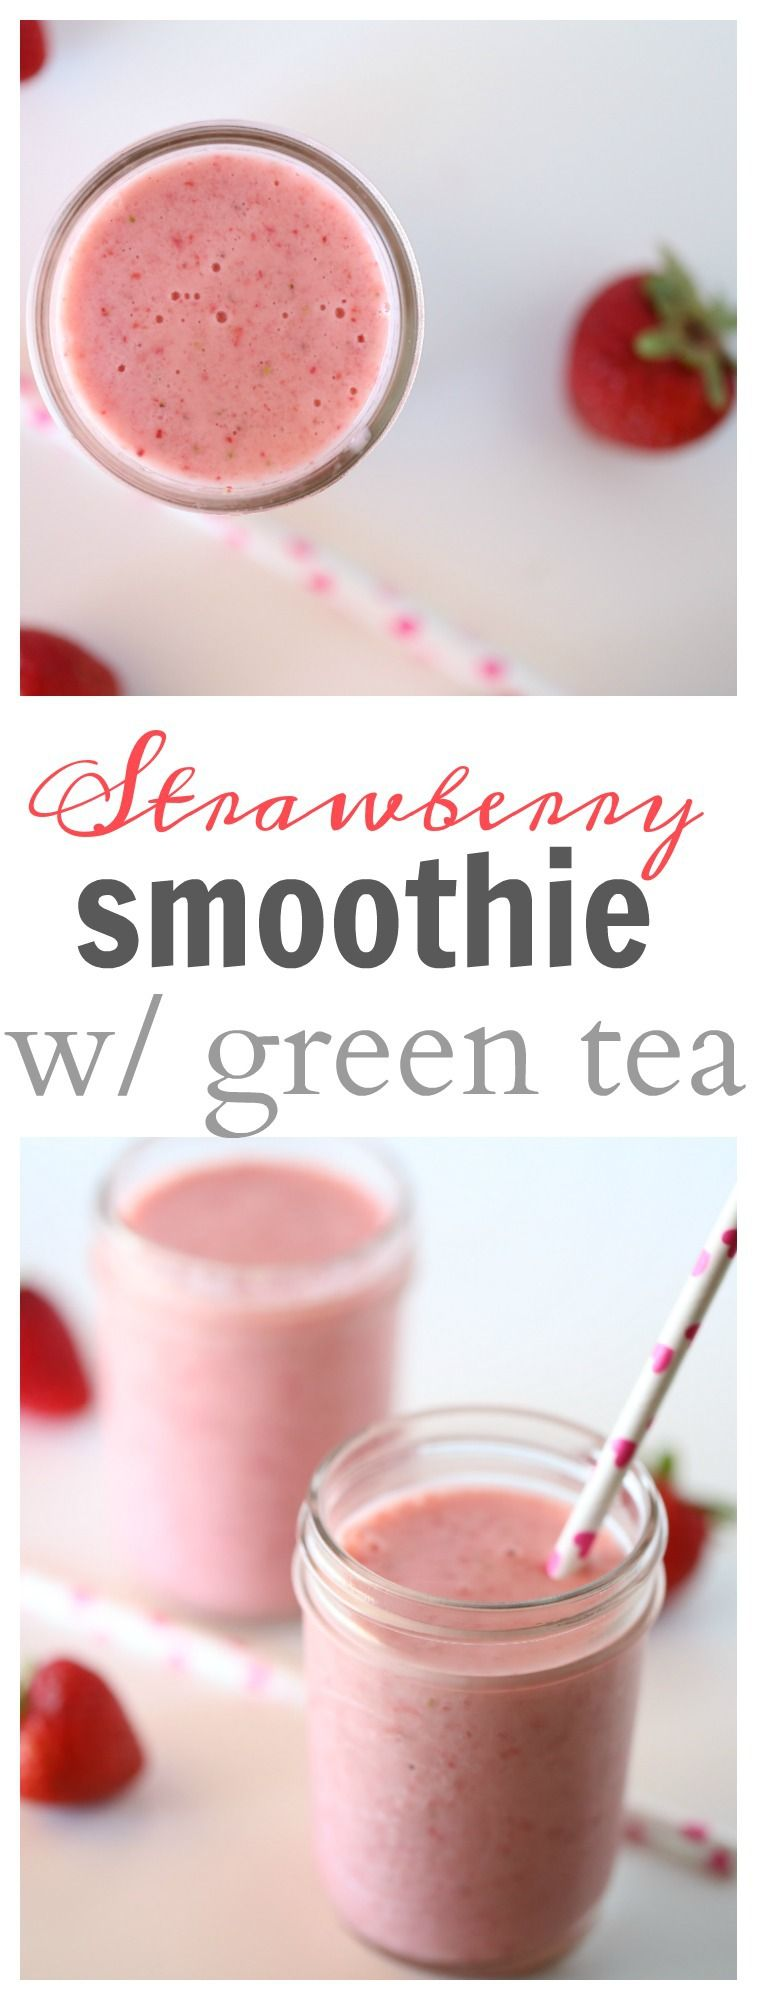 Photo of Strawberry Smoothie with Green Tea